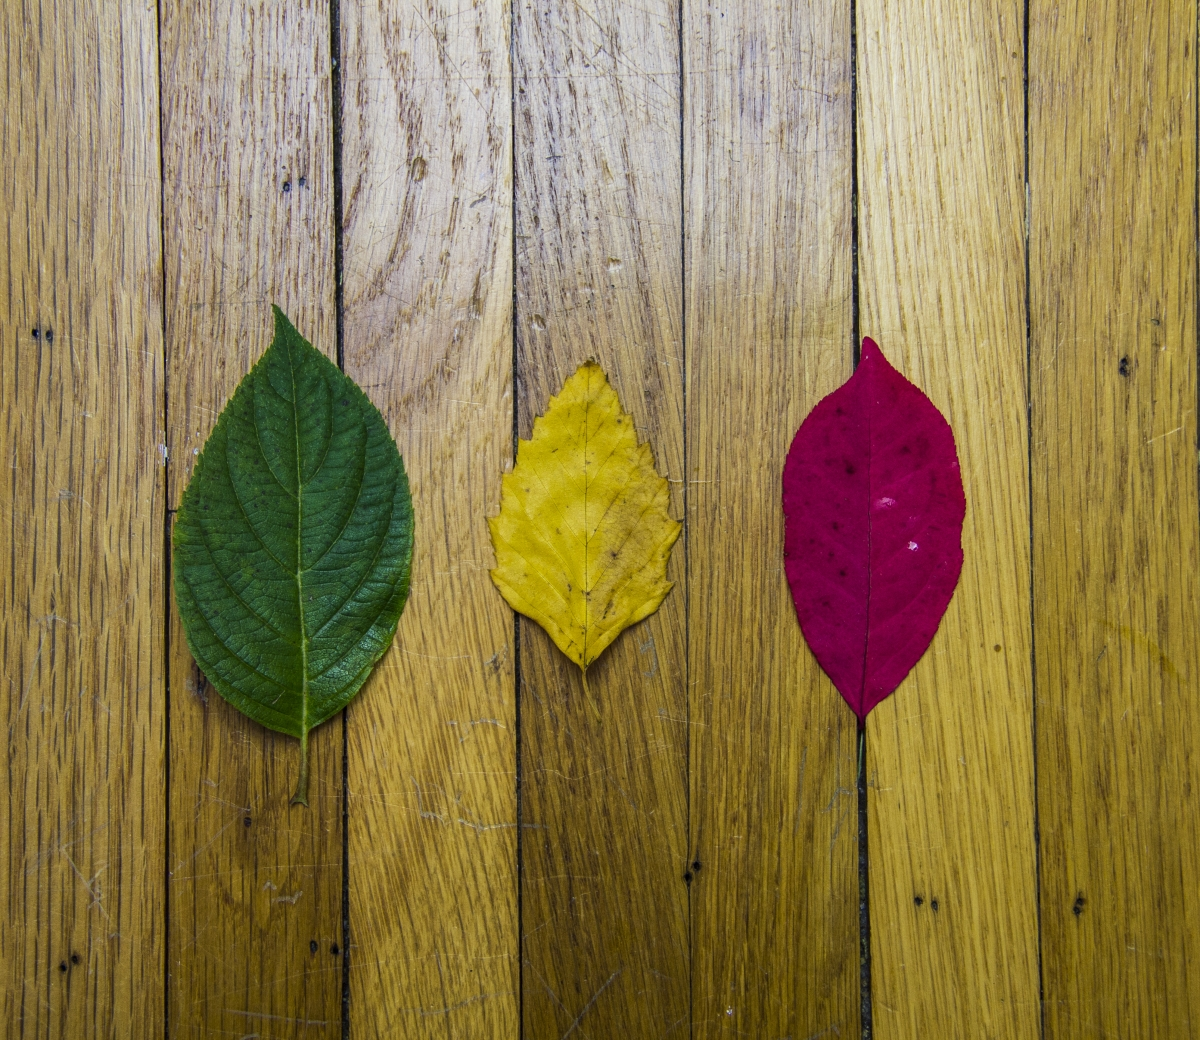 3 leaves - stages of csr